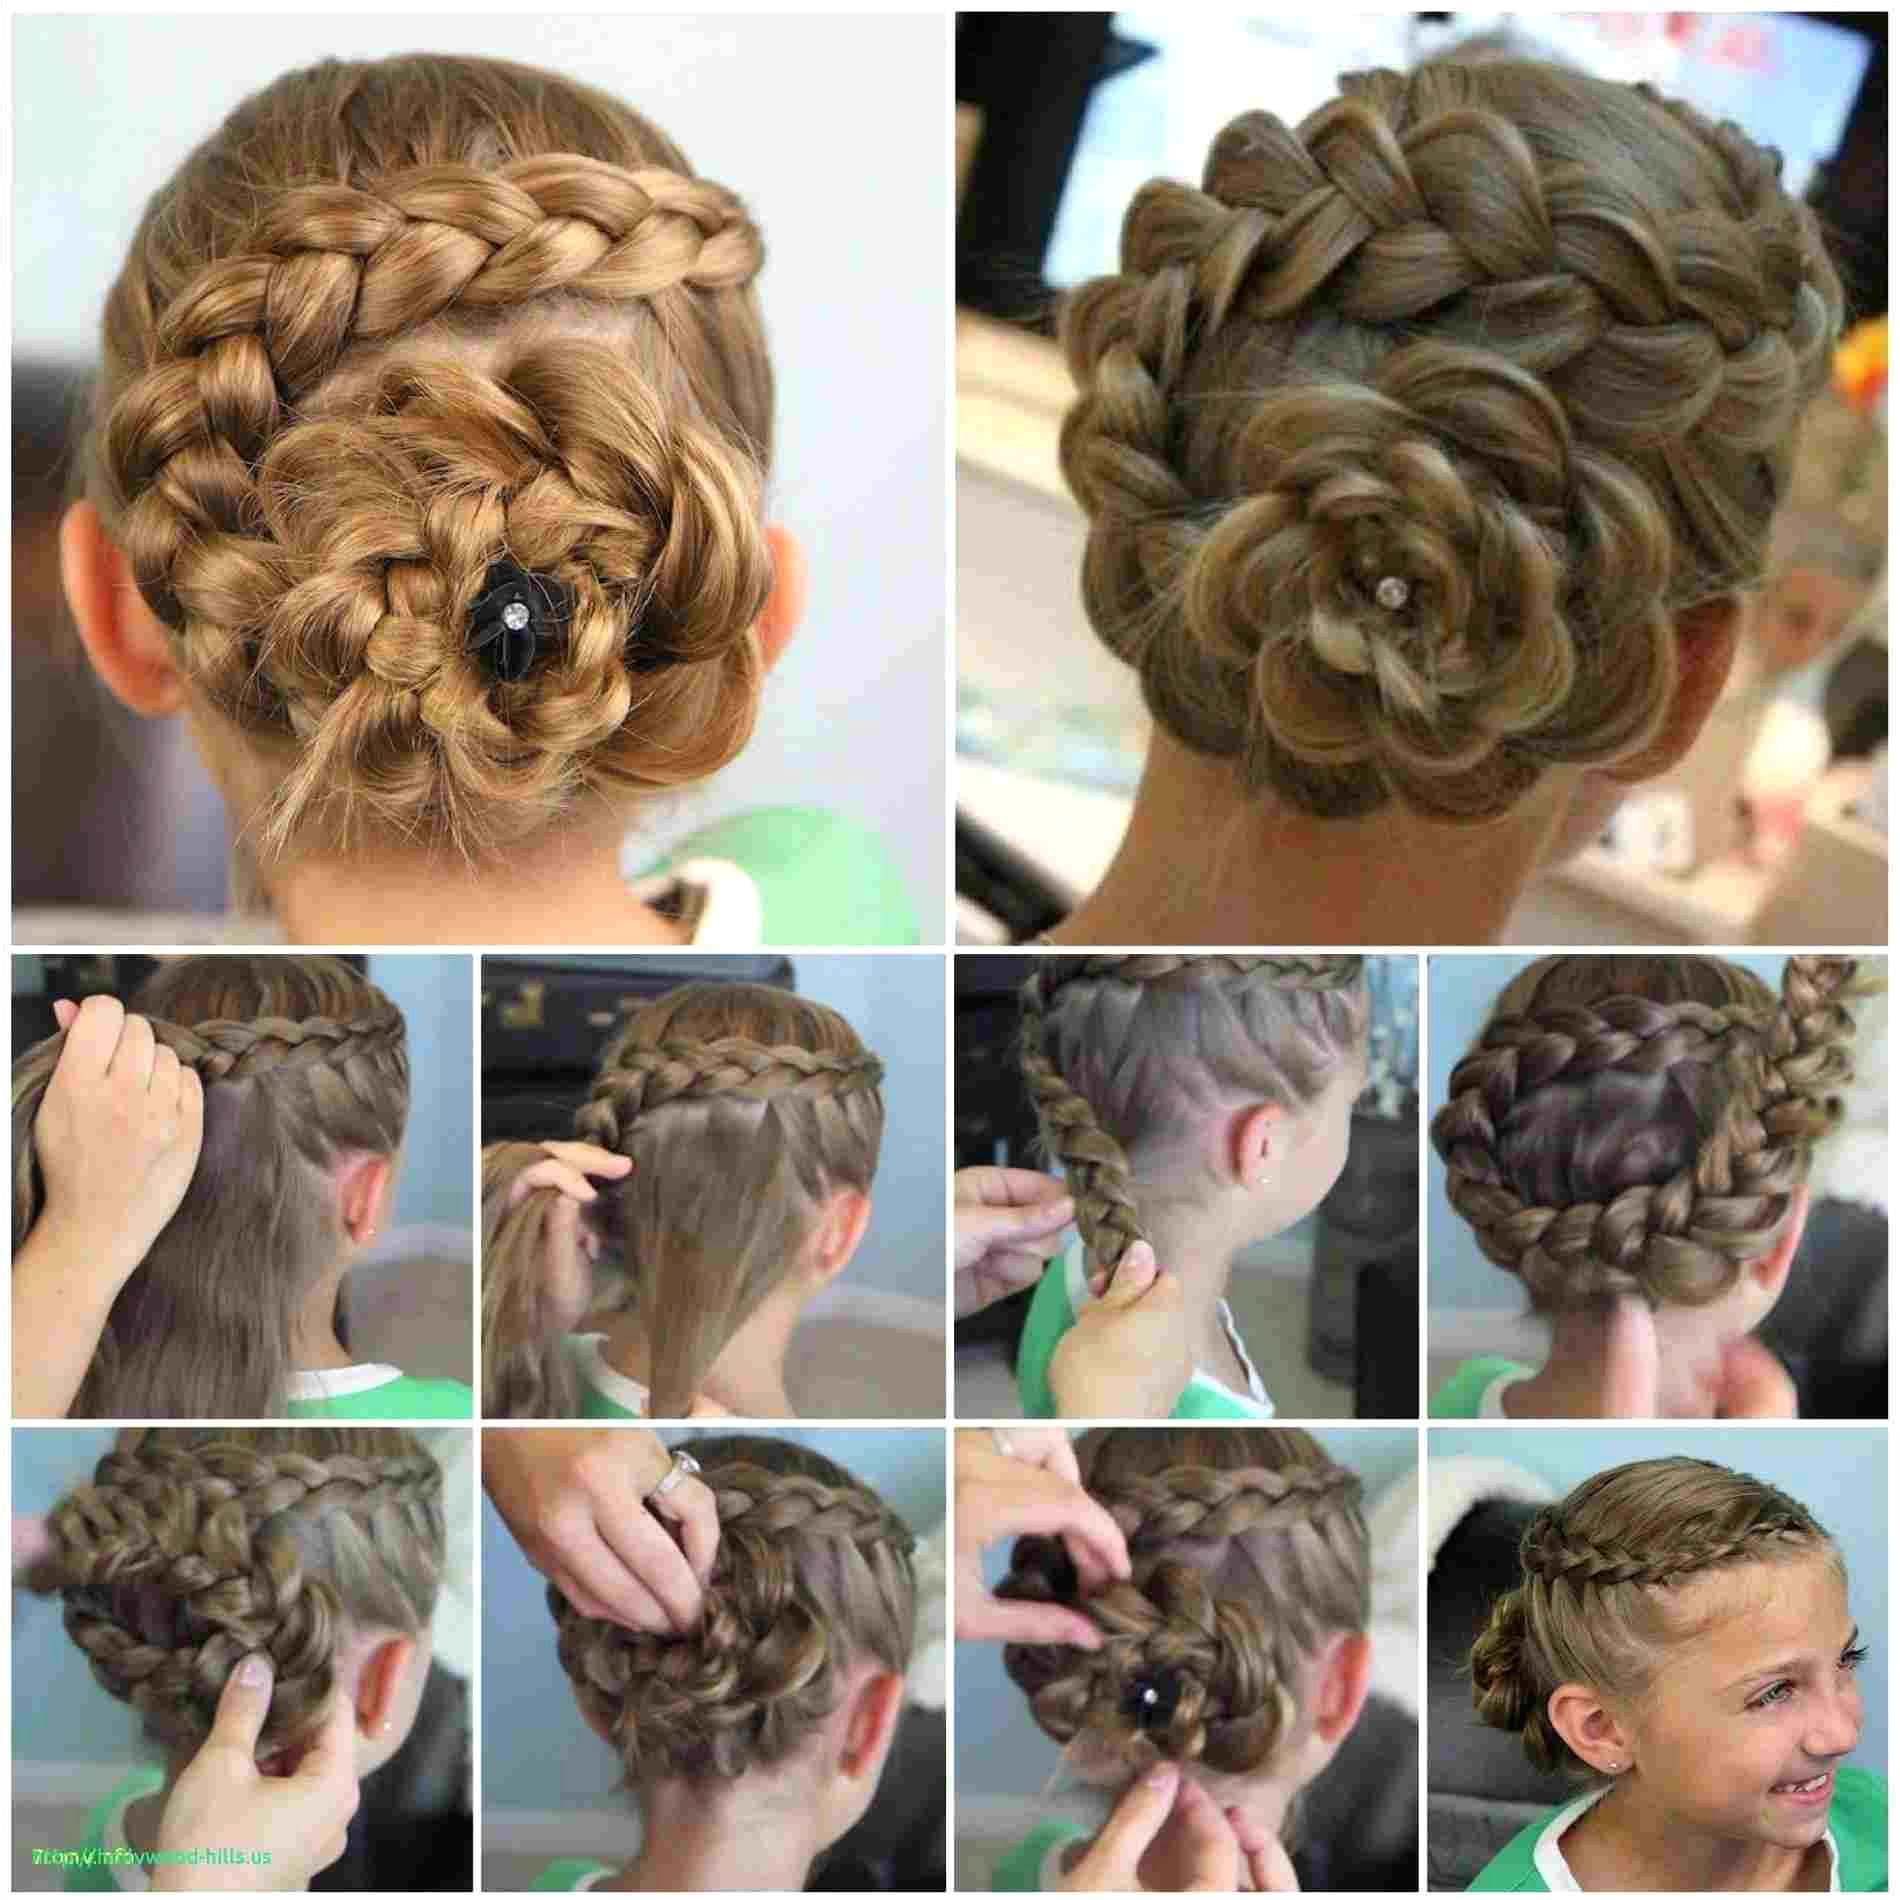 5 Easy Hairstyles for School Youtube Cute Hairstyles with Curls Youtube Cute Easy Hairstyles for School